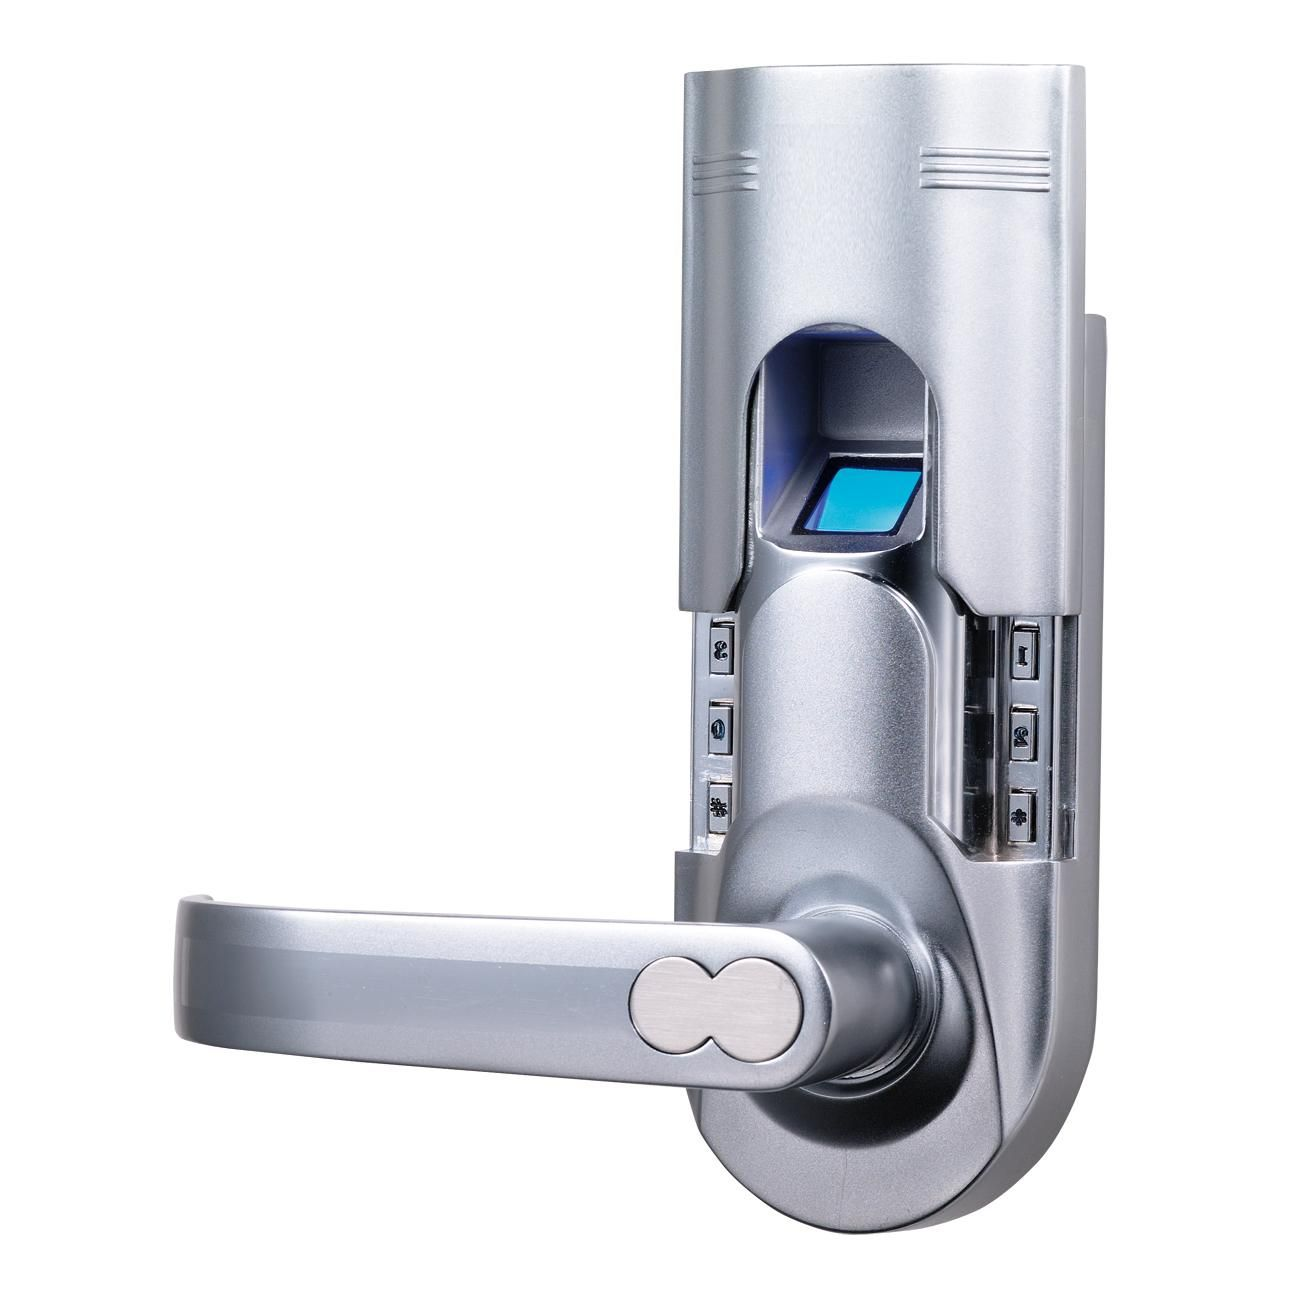 assa abloy digi digital electronic single latch biometric fingerprint keypad door lock key lock knob chrome left lever handle - Biometric Door Lock